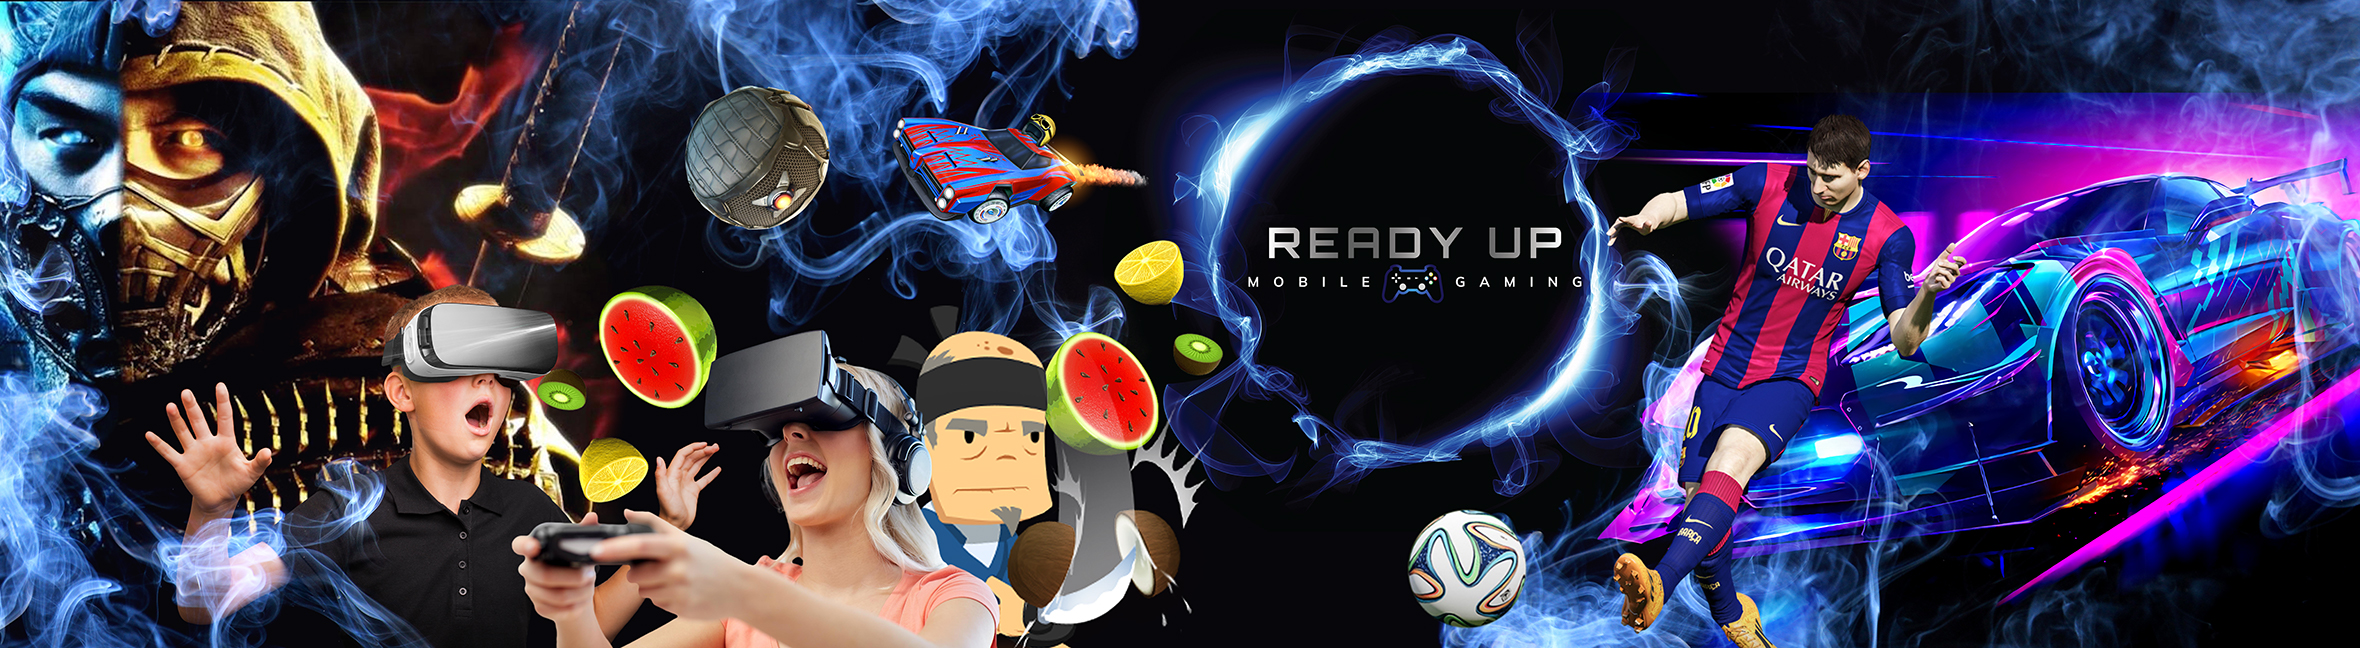 Ready Up Mobile Gaming Experience